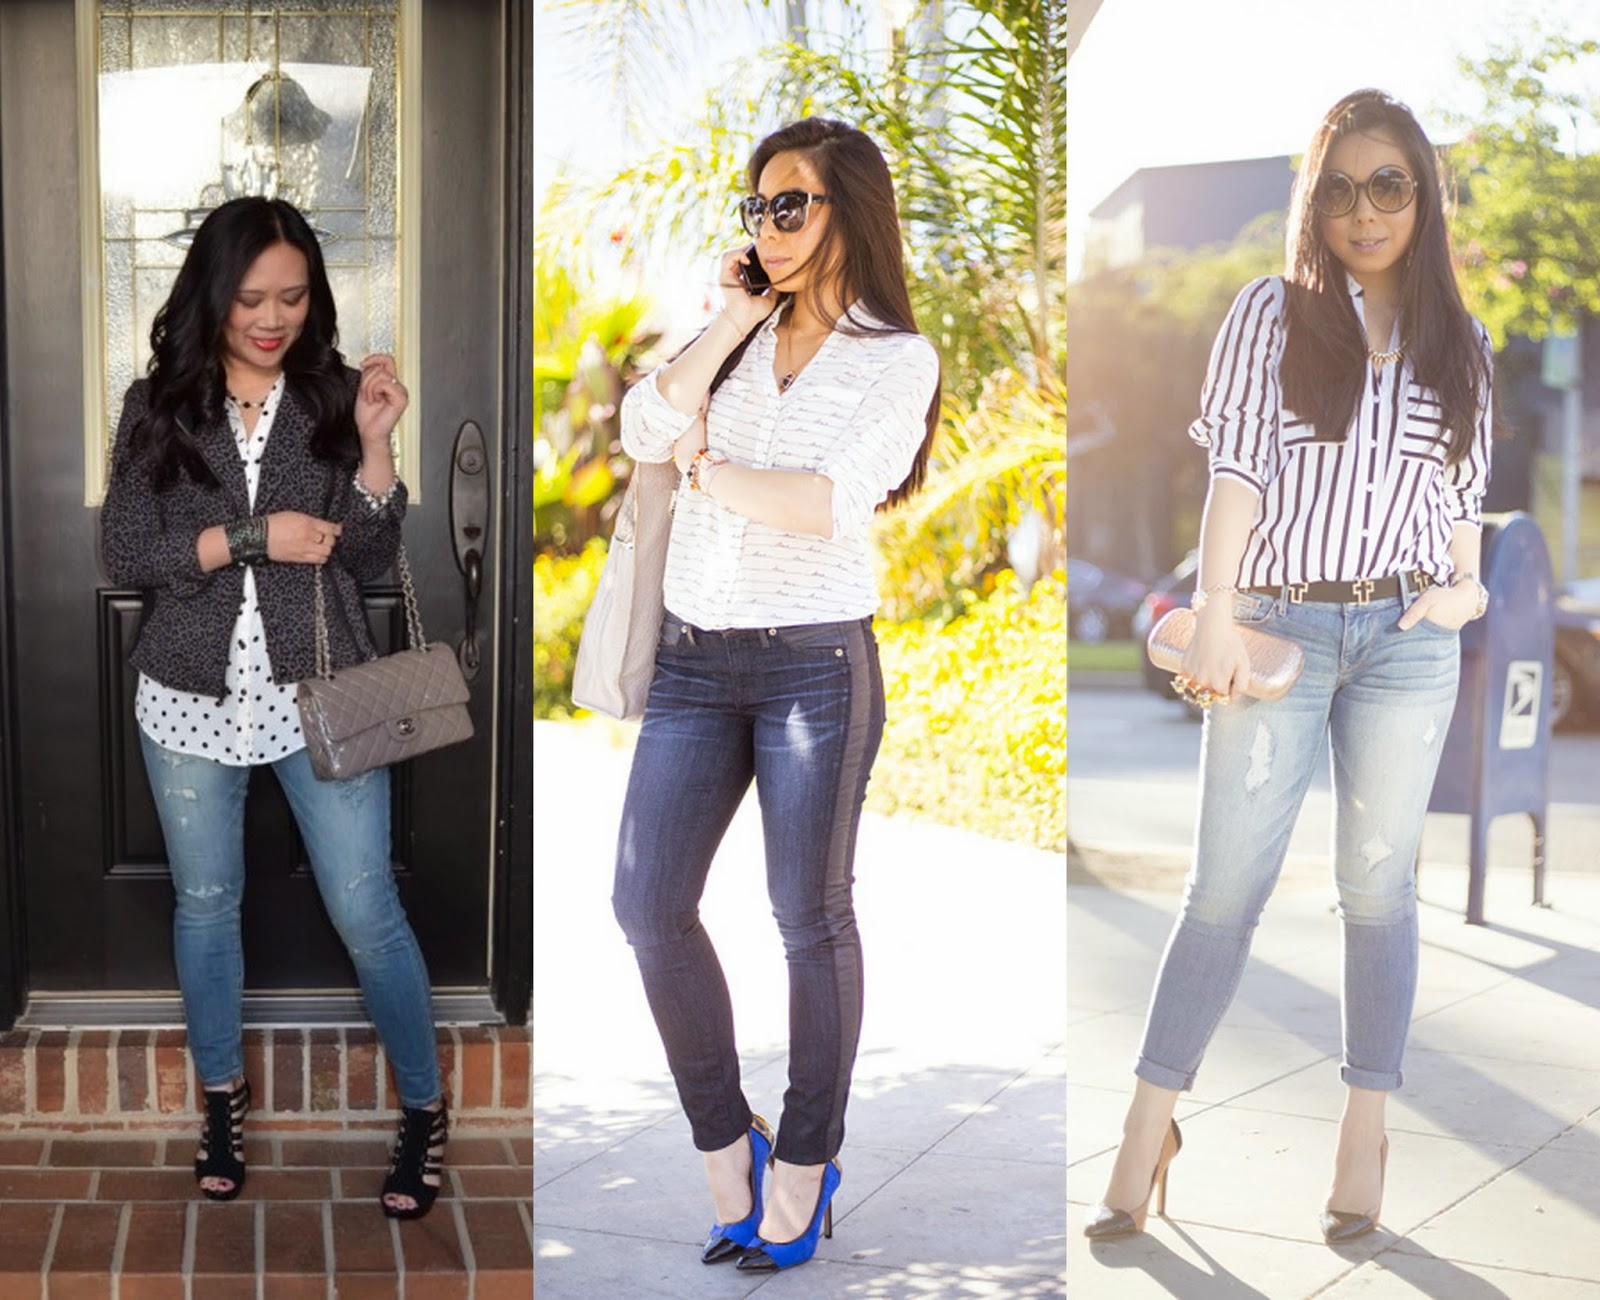 express portofino shirt, jeans, denim looks